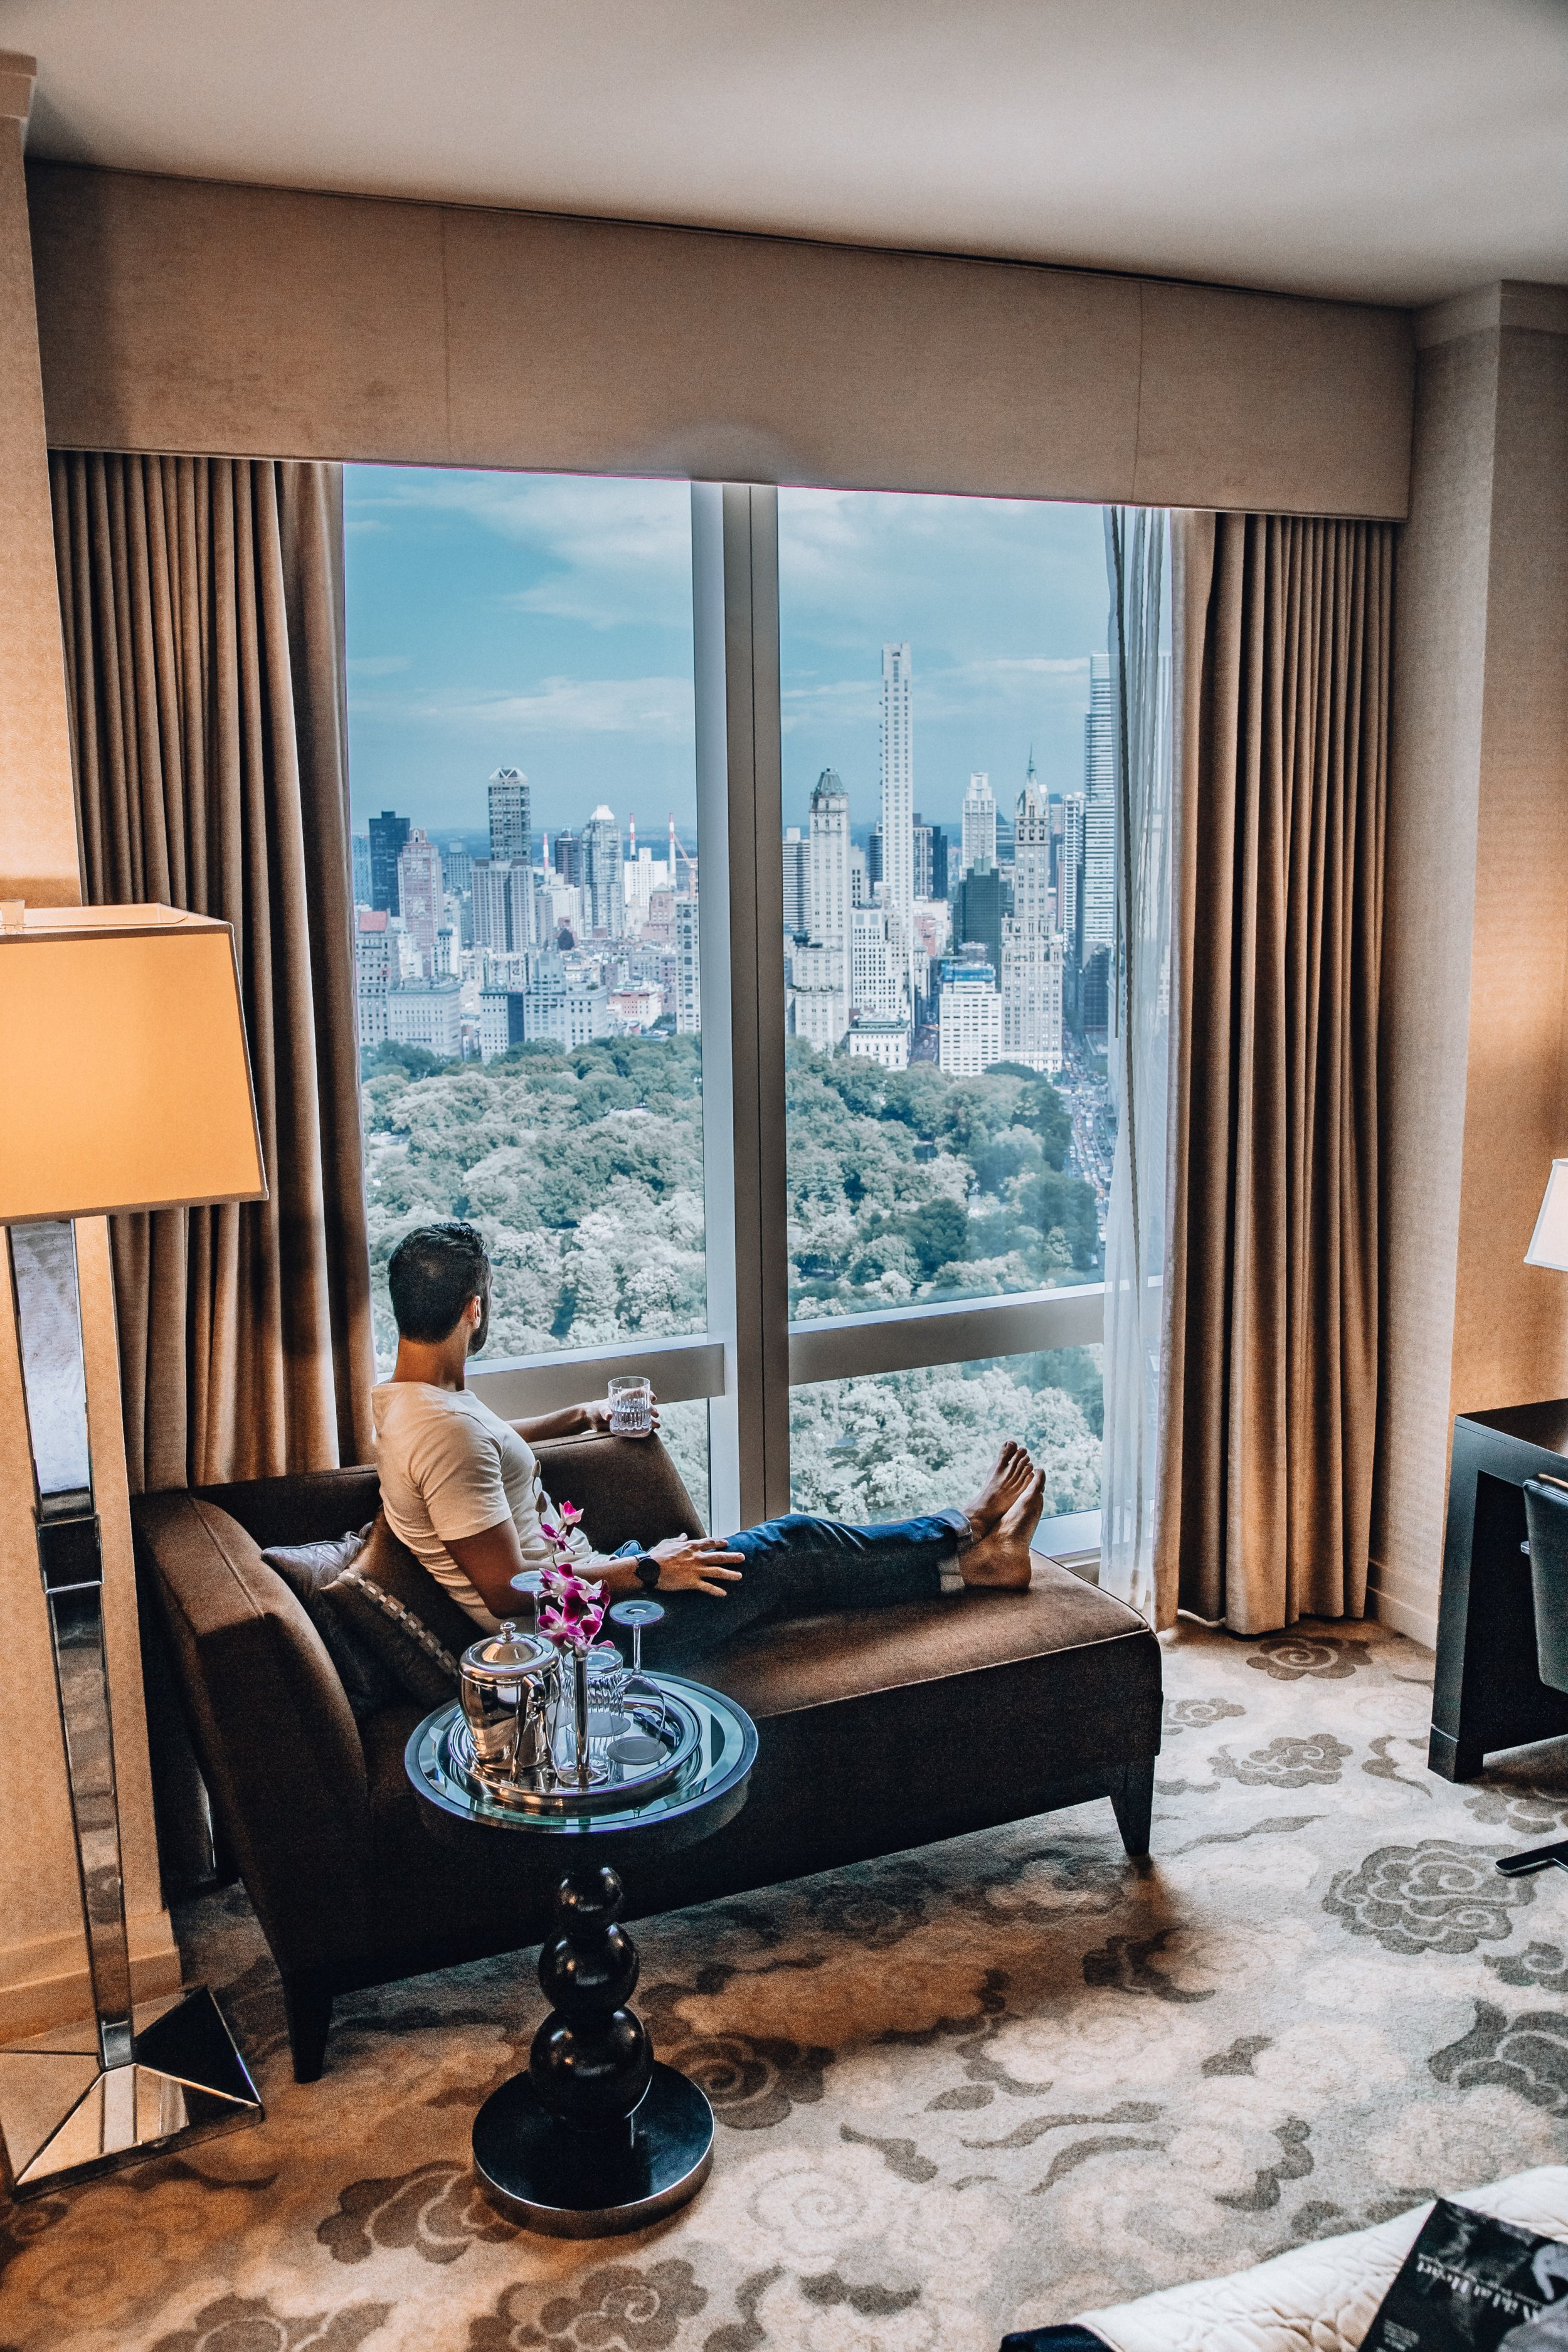 The suites feature a classic and elegant design with asian accents. They are spacious and the views of Central Park are impressive.